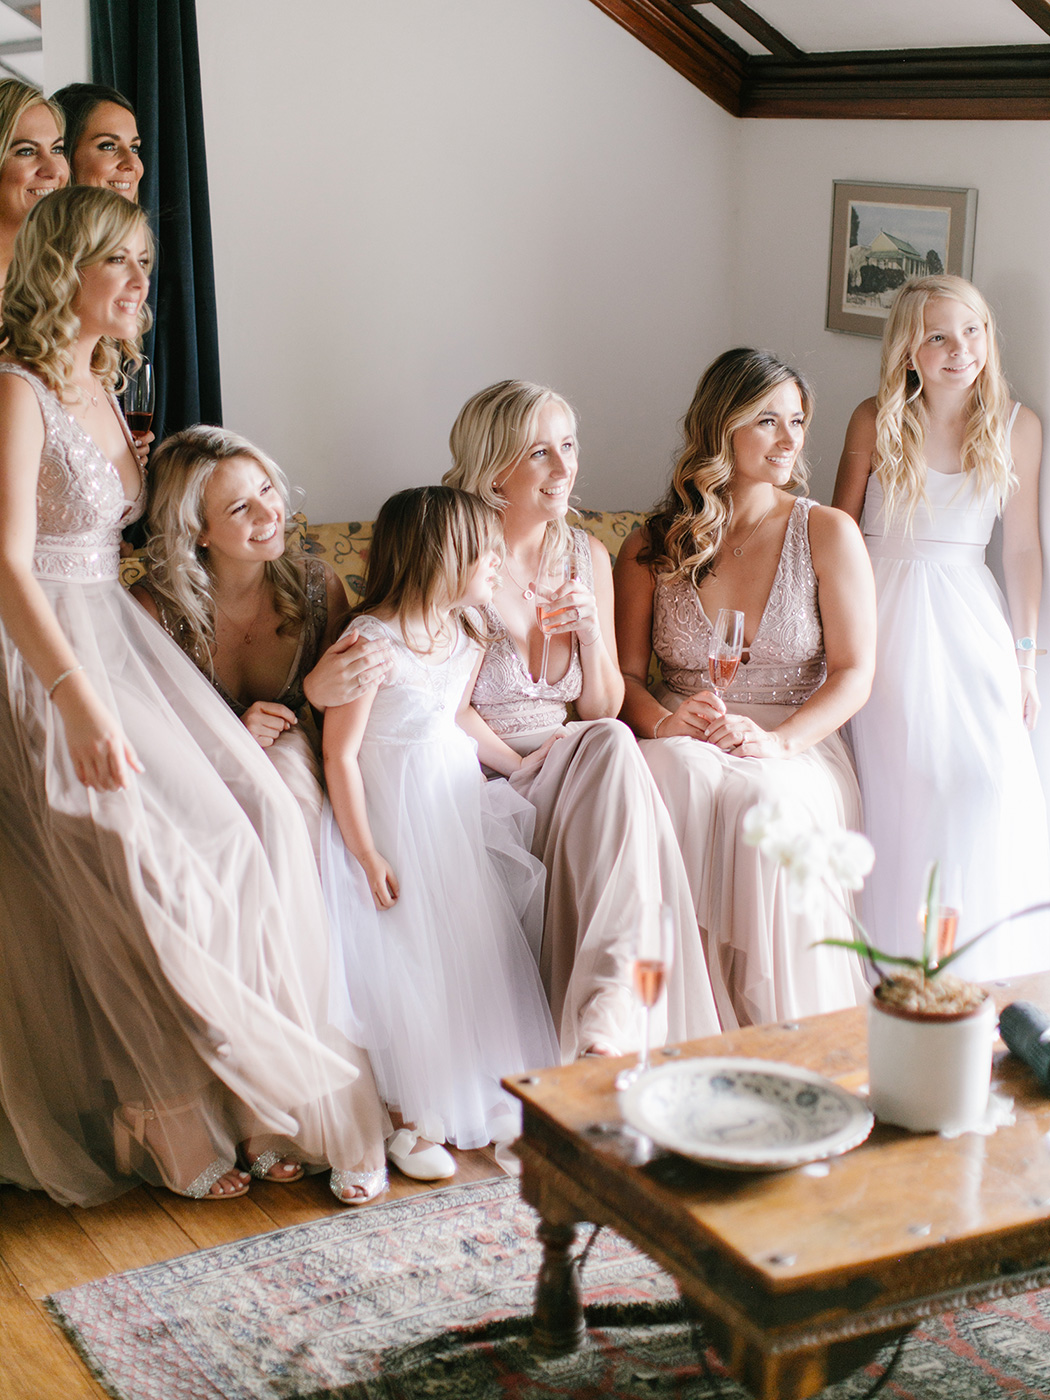 Bridesmaids | Rensche Mari Photography